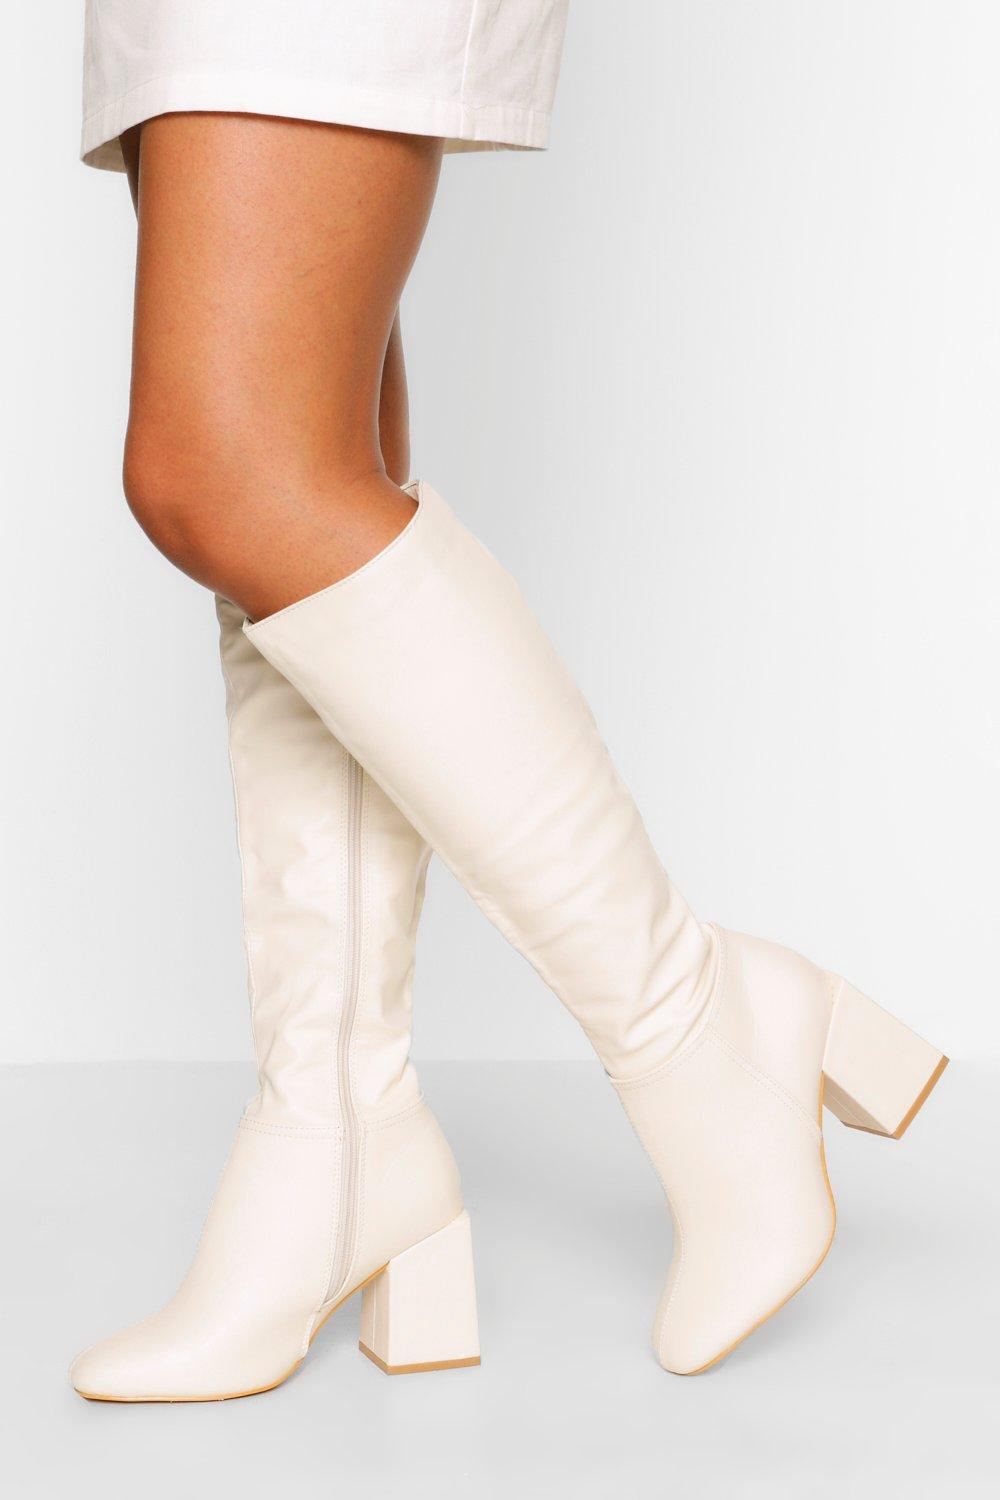 Vintage Boots, Retro Boots Womens Wide Fit Block Heel Knee High Boot - White - 10 $45.00 AT vintagedancer.com